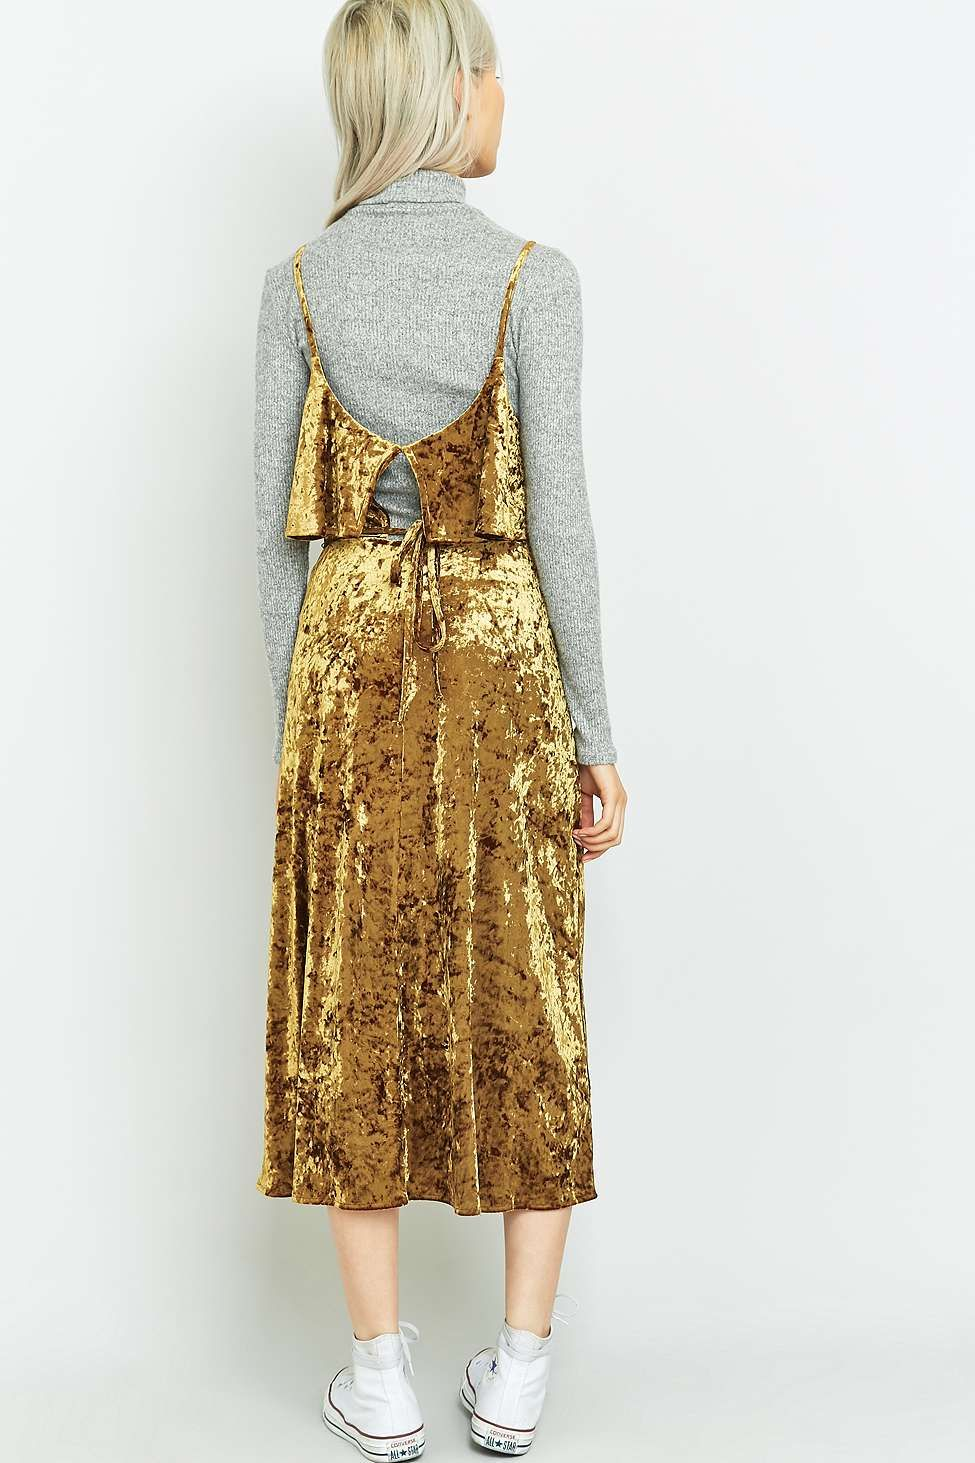 Pins And Needles Clothing Pins & Needles Ruffle Gold Velvet Midi Dress